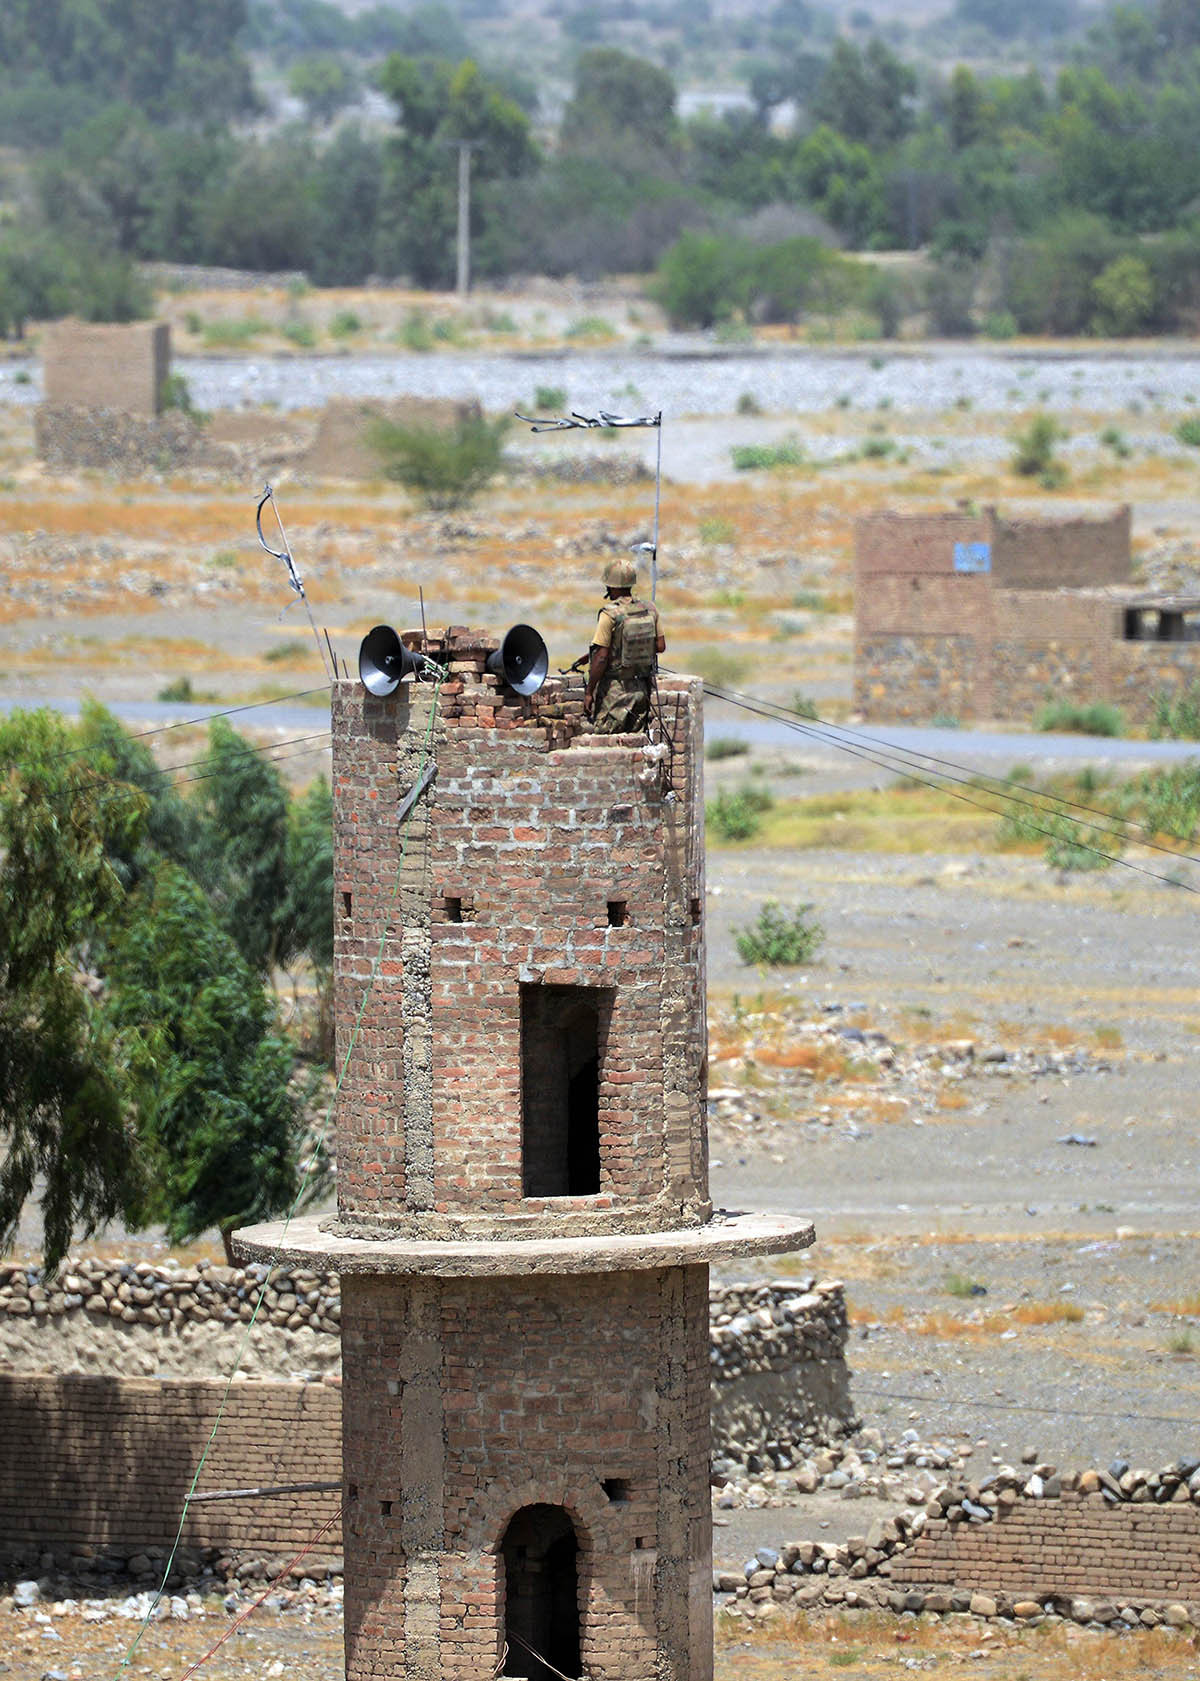 This photograph taken on July 9, 2014 shows a Pakistani soldier keeping watch on top of damaged mosque minaret during a military operation against Taliban militants, in the main town of Miranshah in North Waziristan.   Pakistan's military says its anti-militant offensive in a northwestern tribal area has now taken control of 80 percent of a strategic town, as a US drone strike on July 10 killed six suspected insurgents. AFP PHOTO/Aamir QURESHI